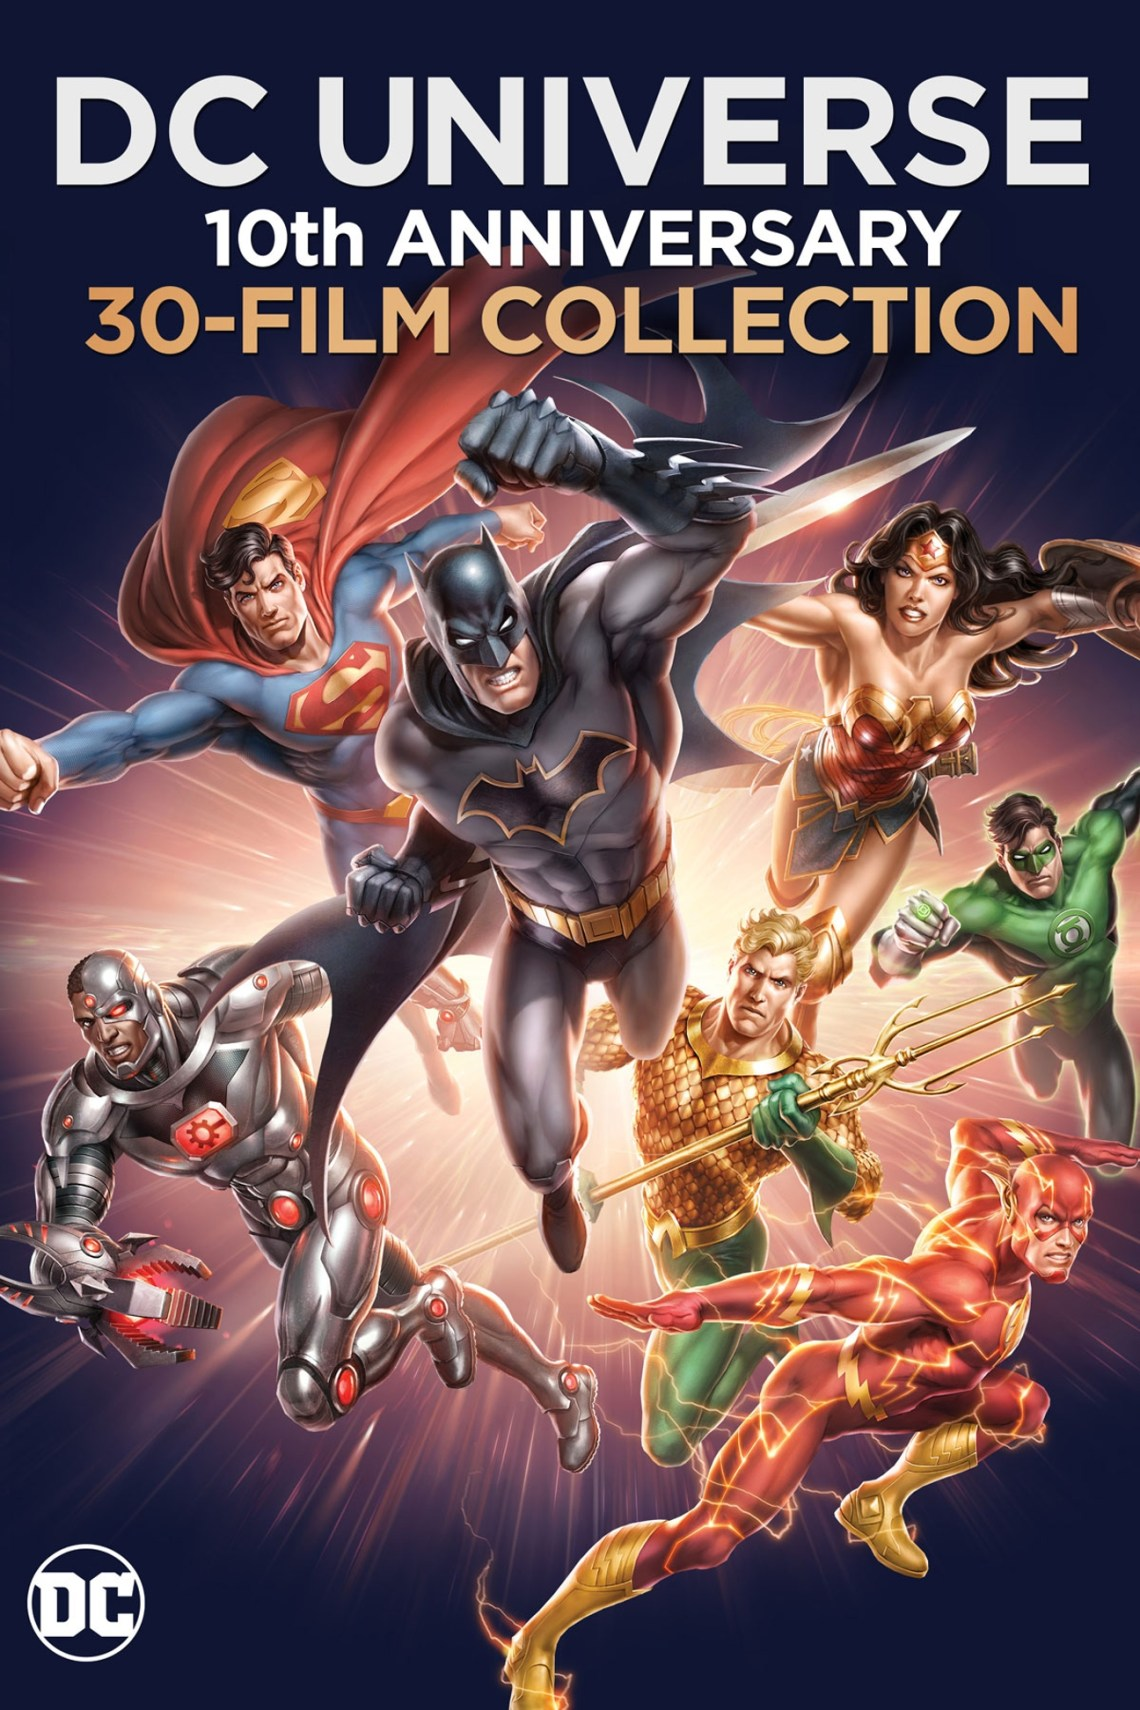 animated-dcu-10th-anniversary-cover-art.jpg